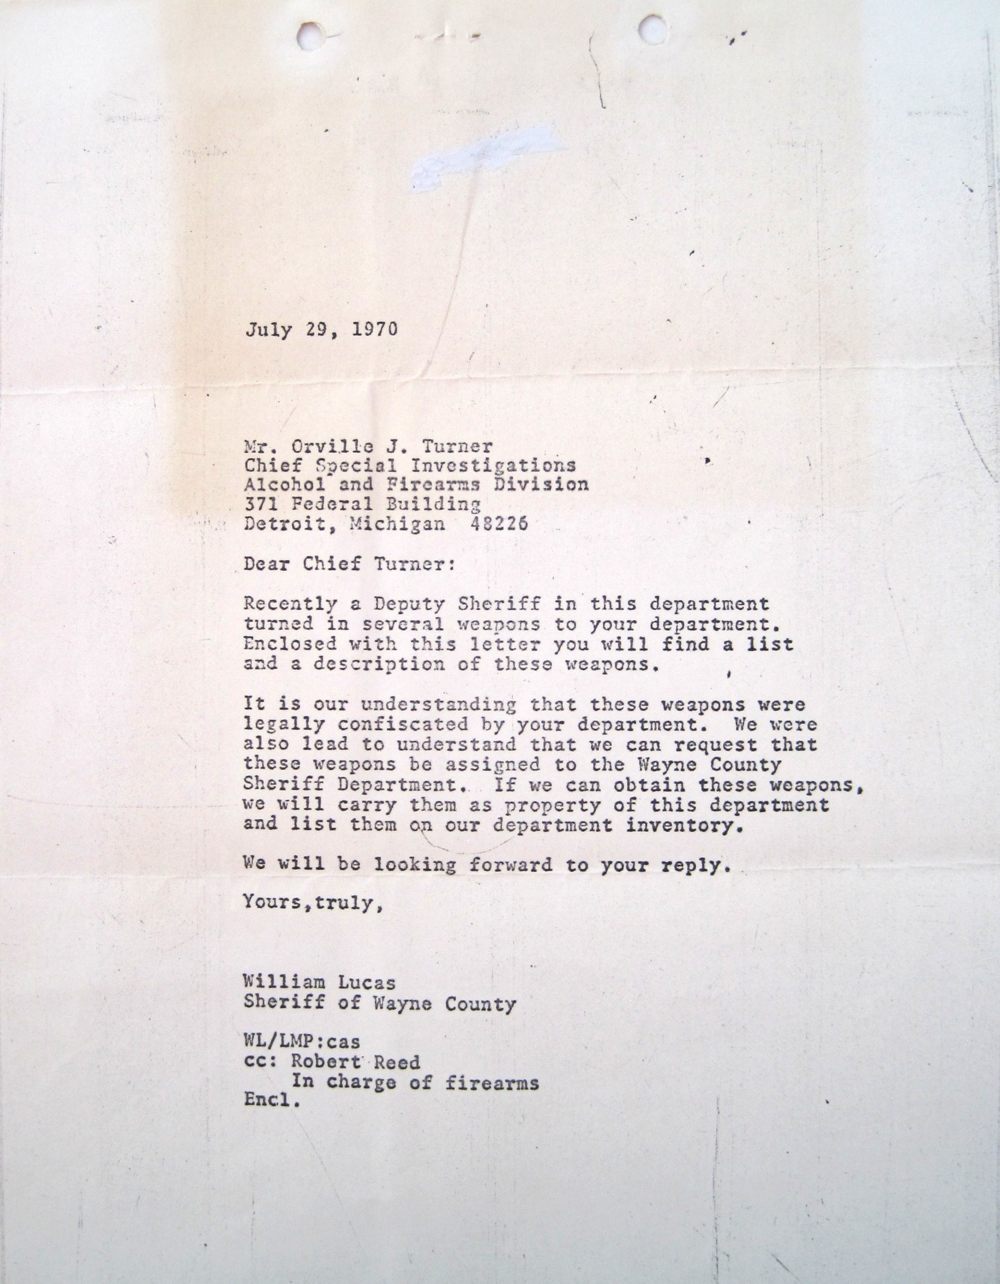 Wednesday, July 29, 1970, Sheriff Lucas' letter